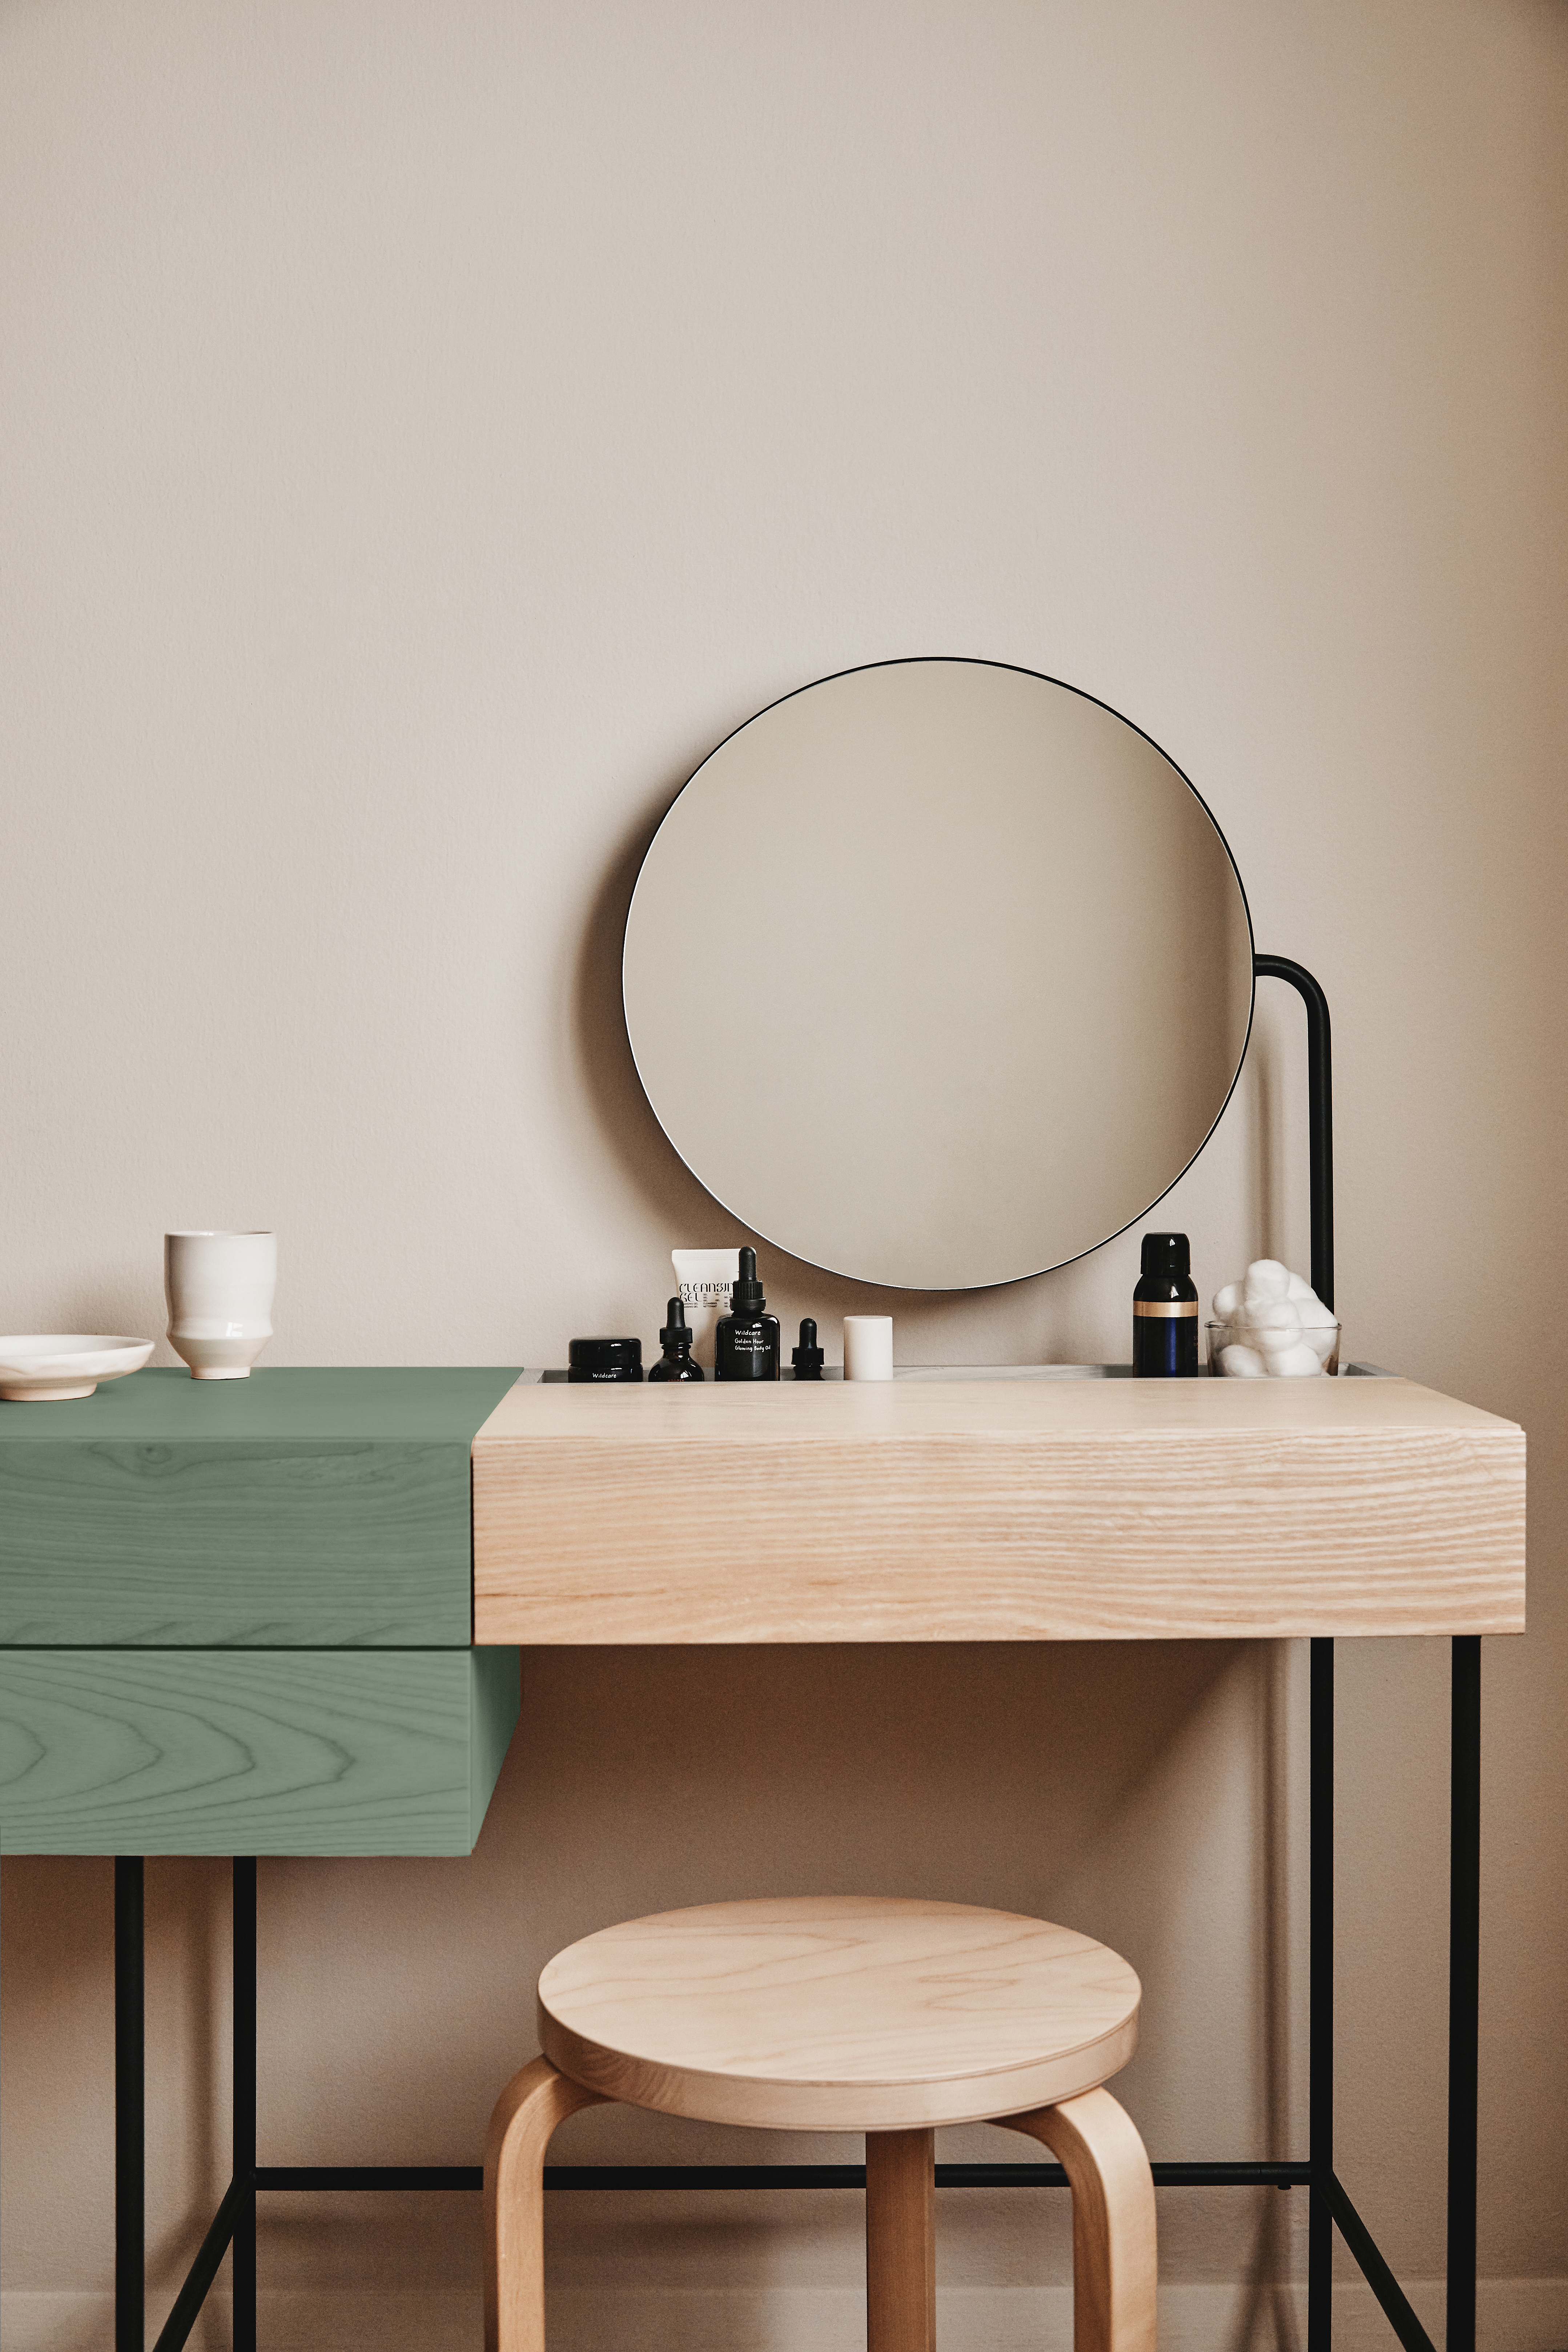 A minimalist designer vanity desk you never knew you needed